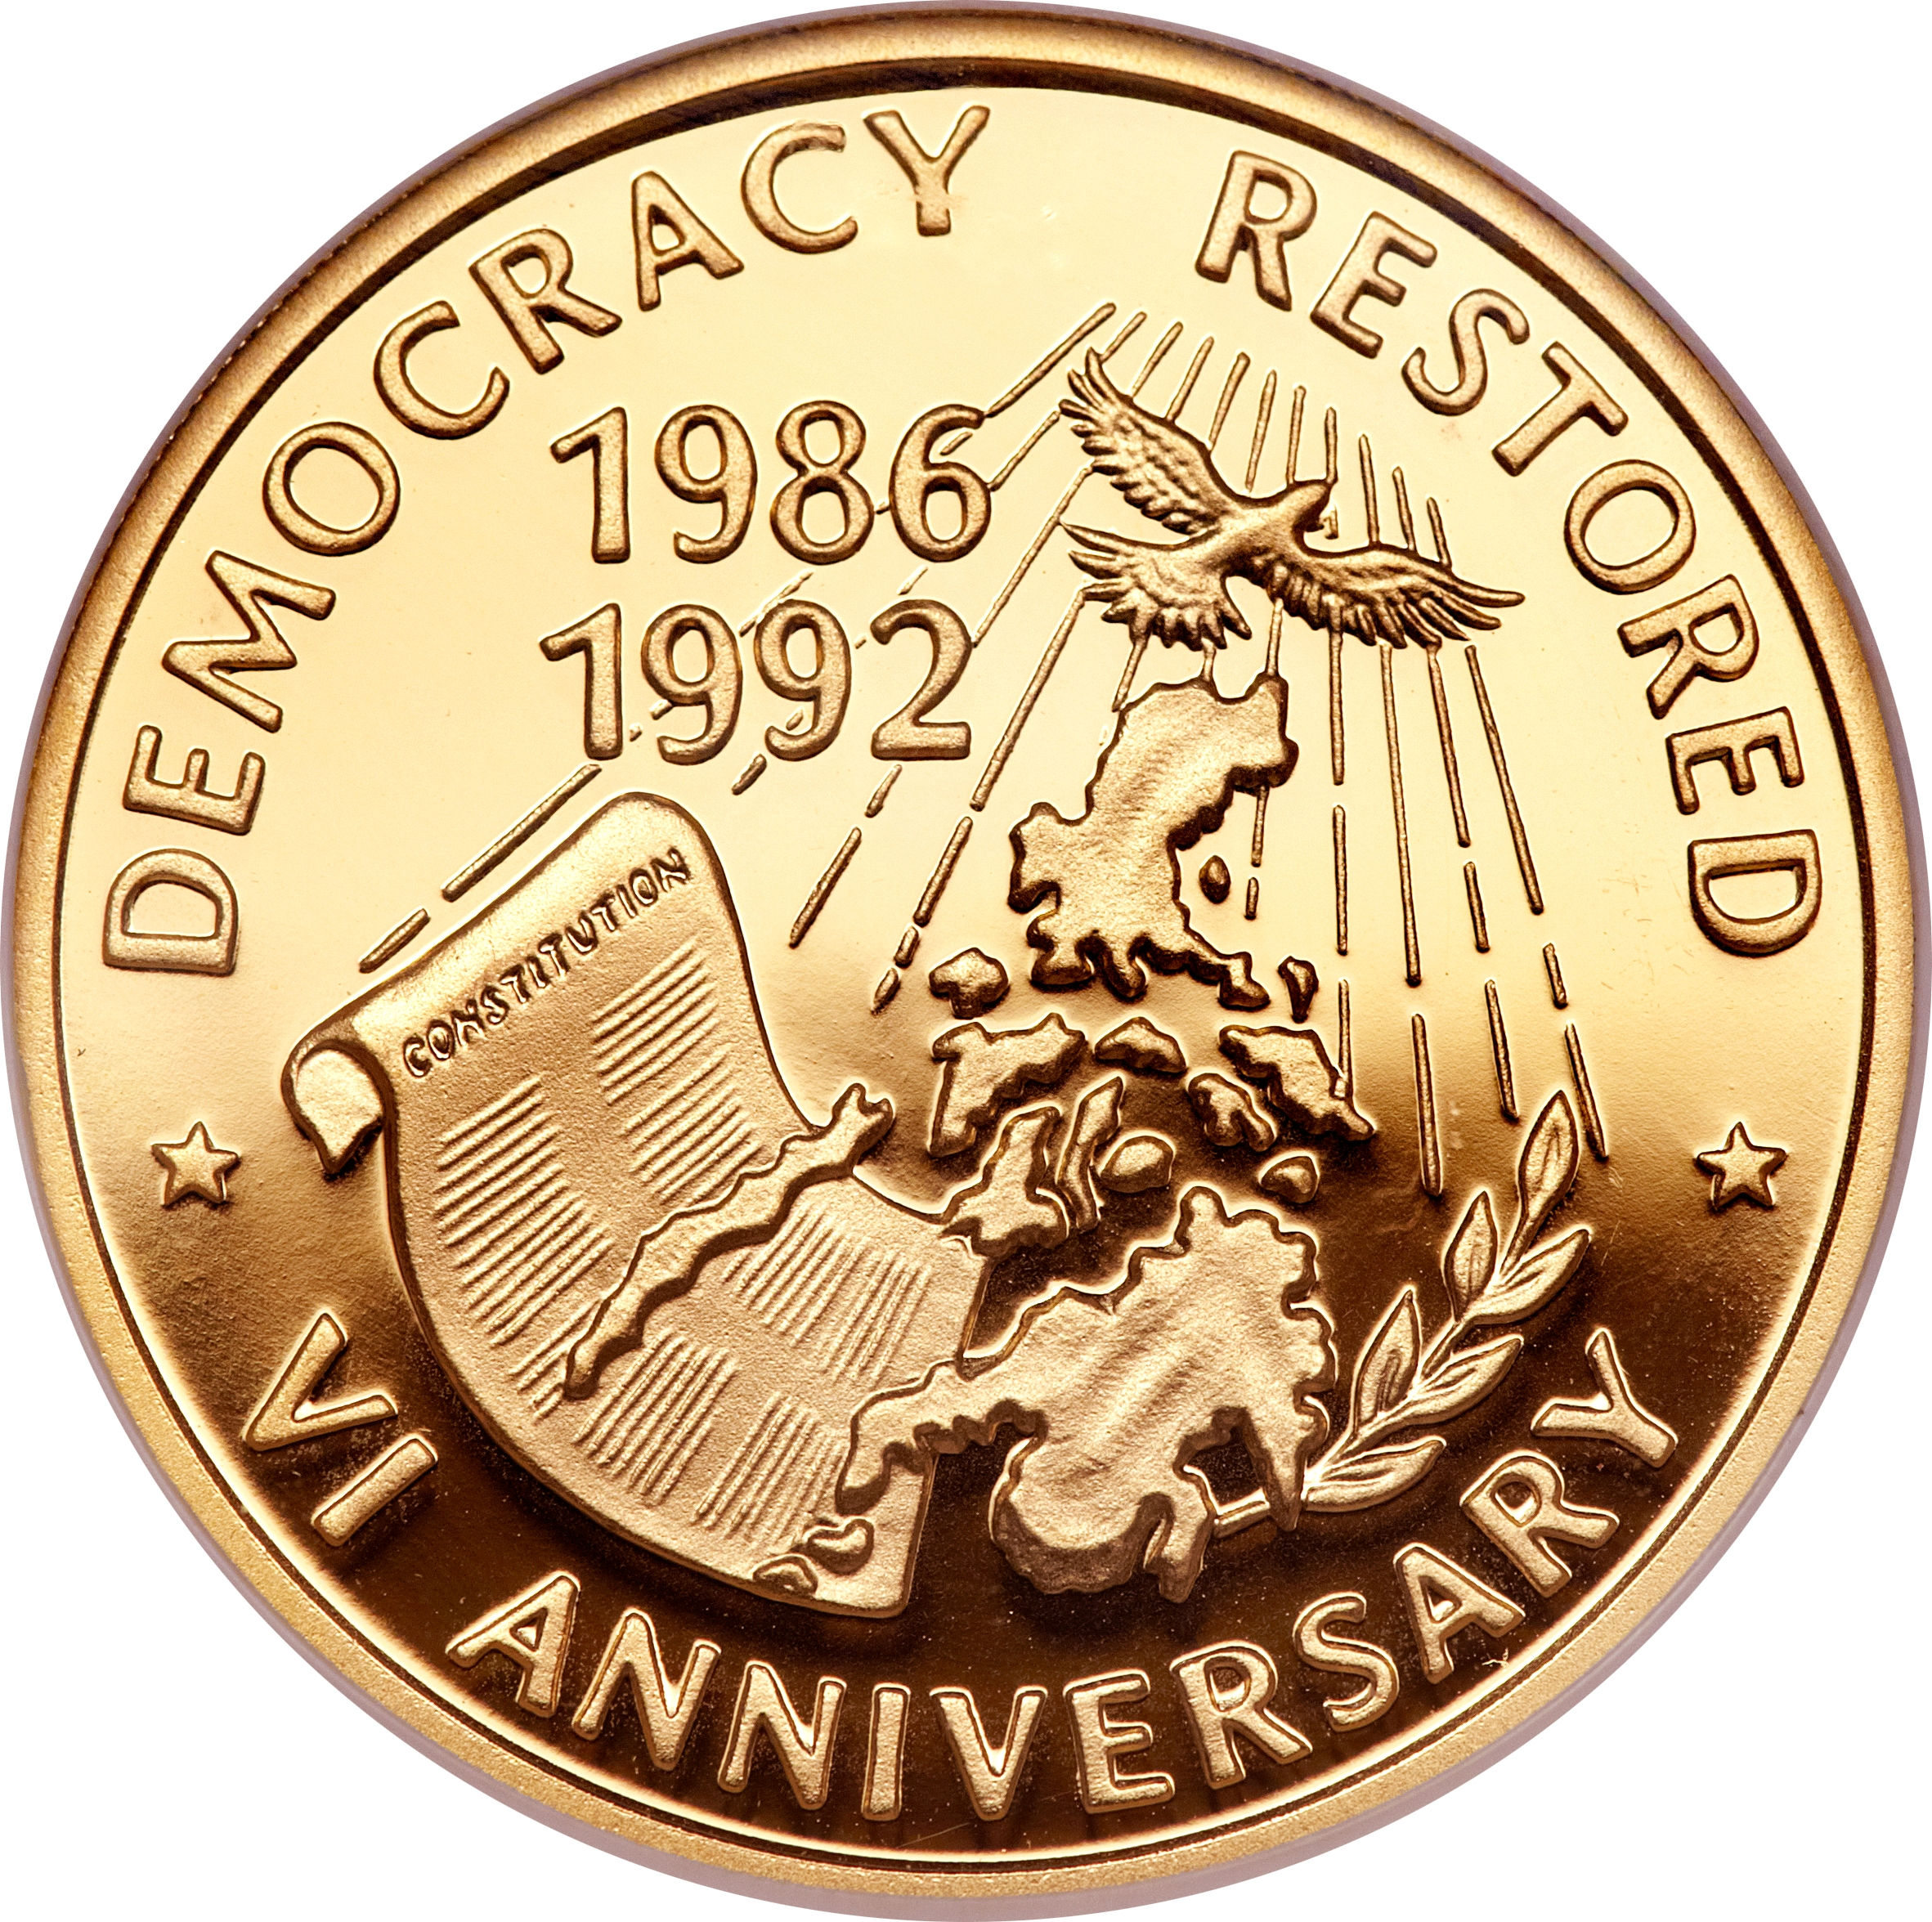 Coin Ph: 10 000 Pesos (Democracy)